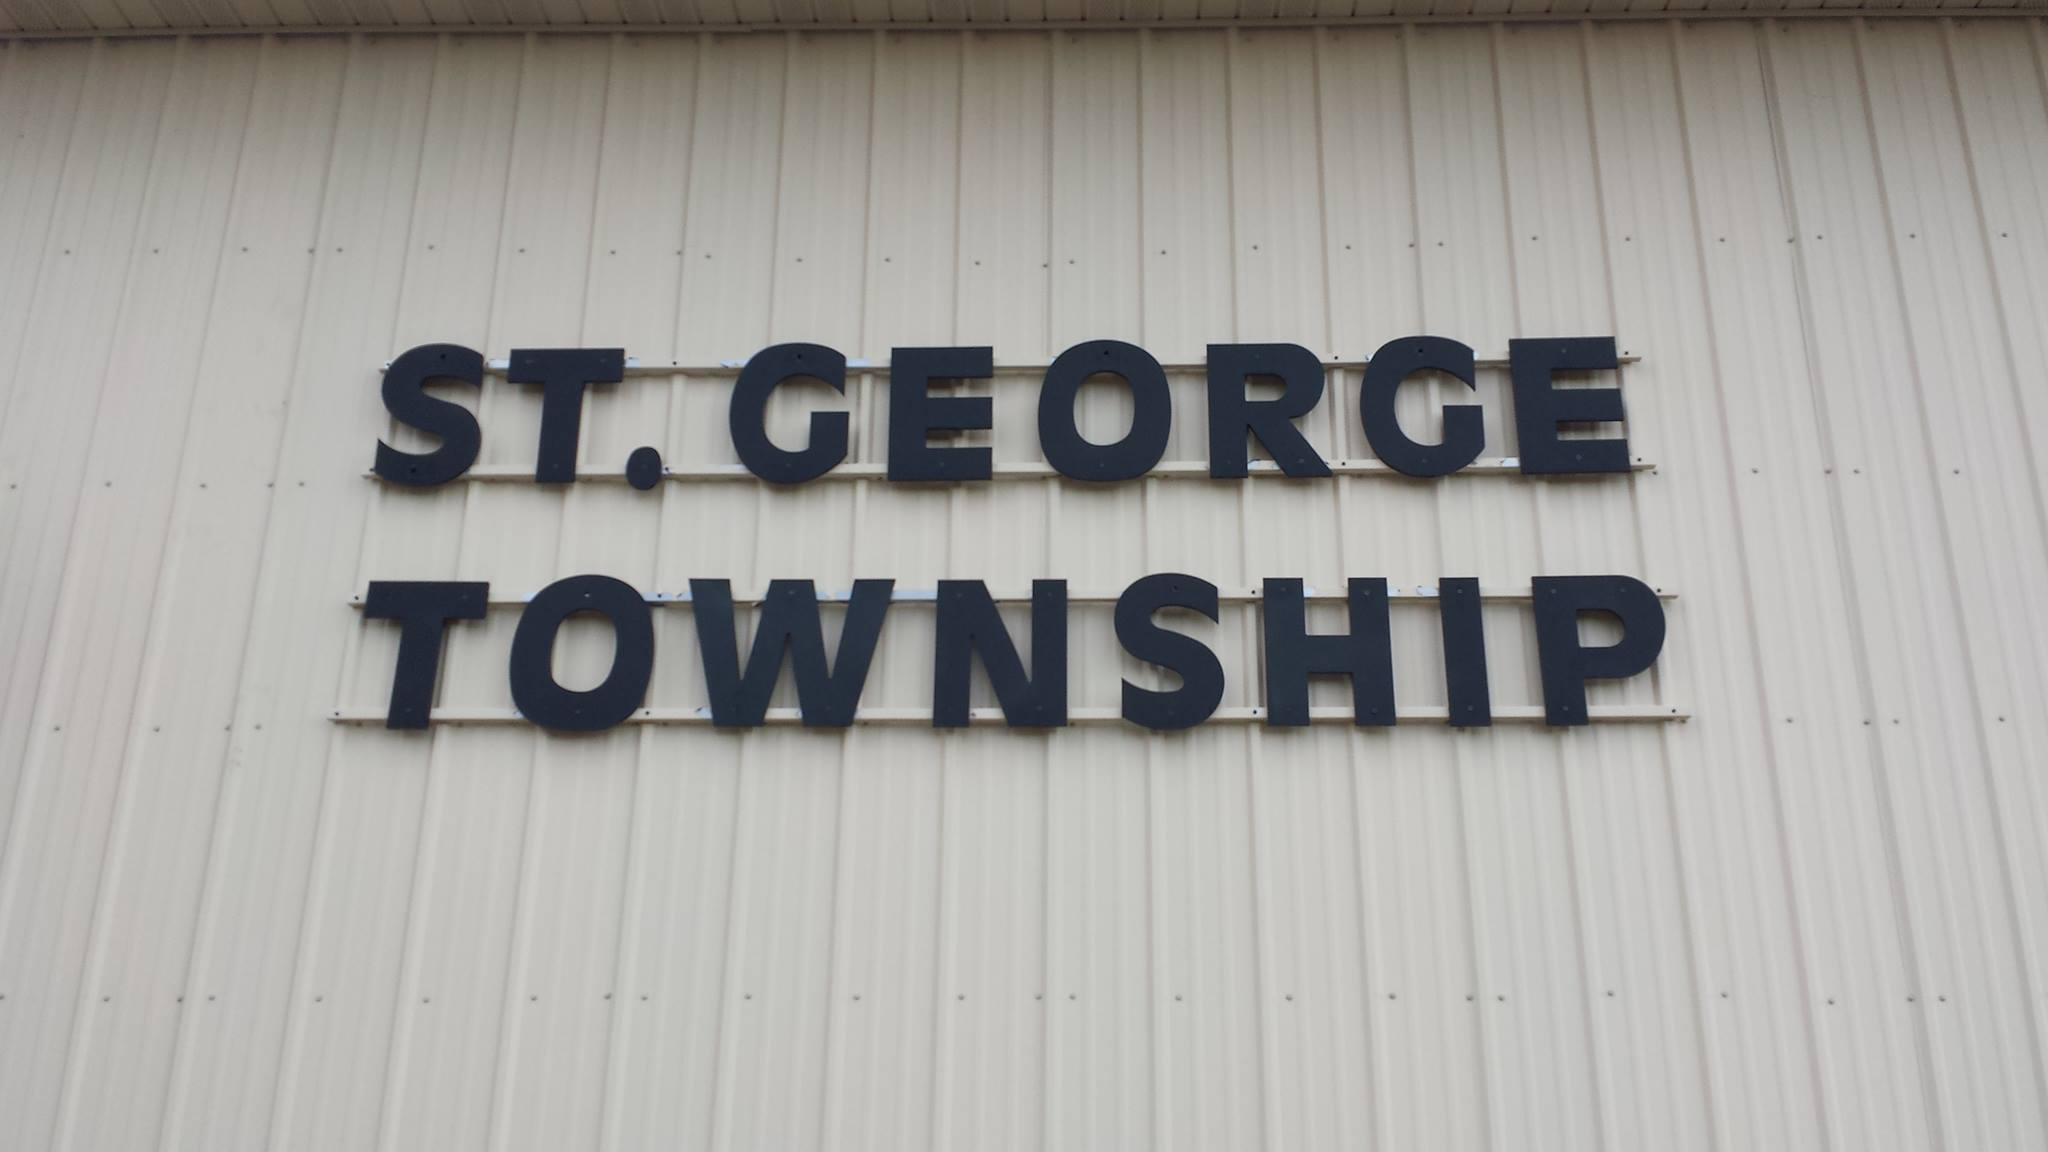 St. George Township